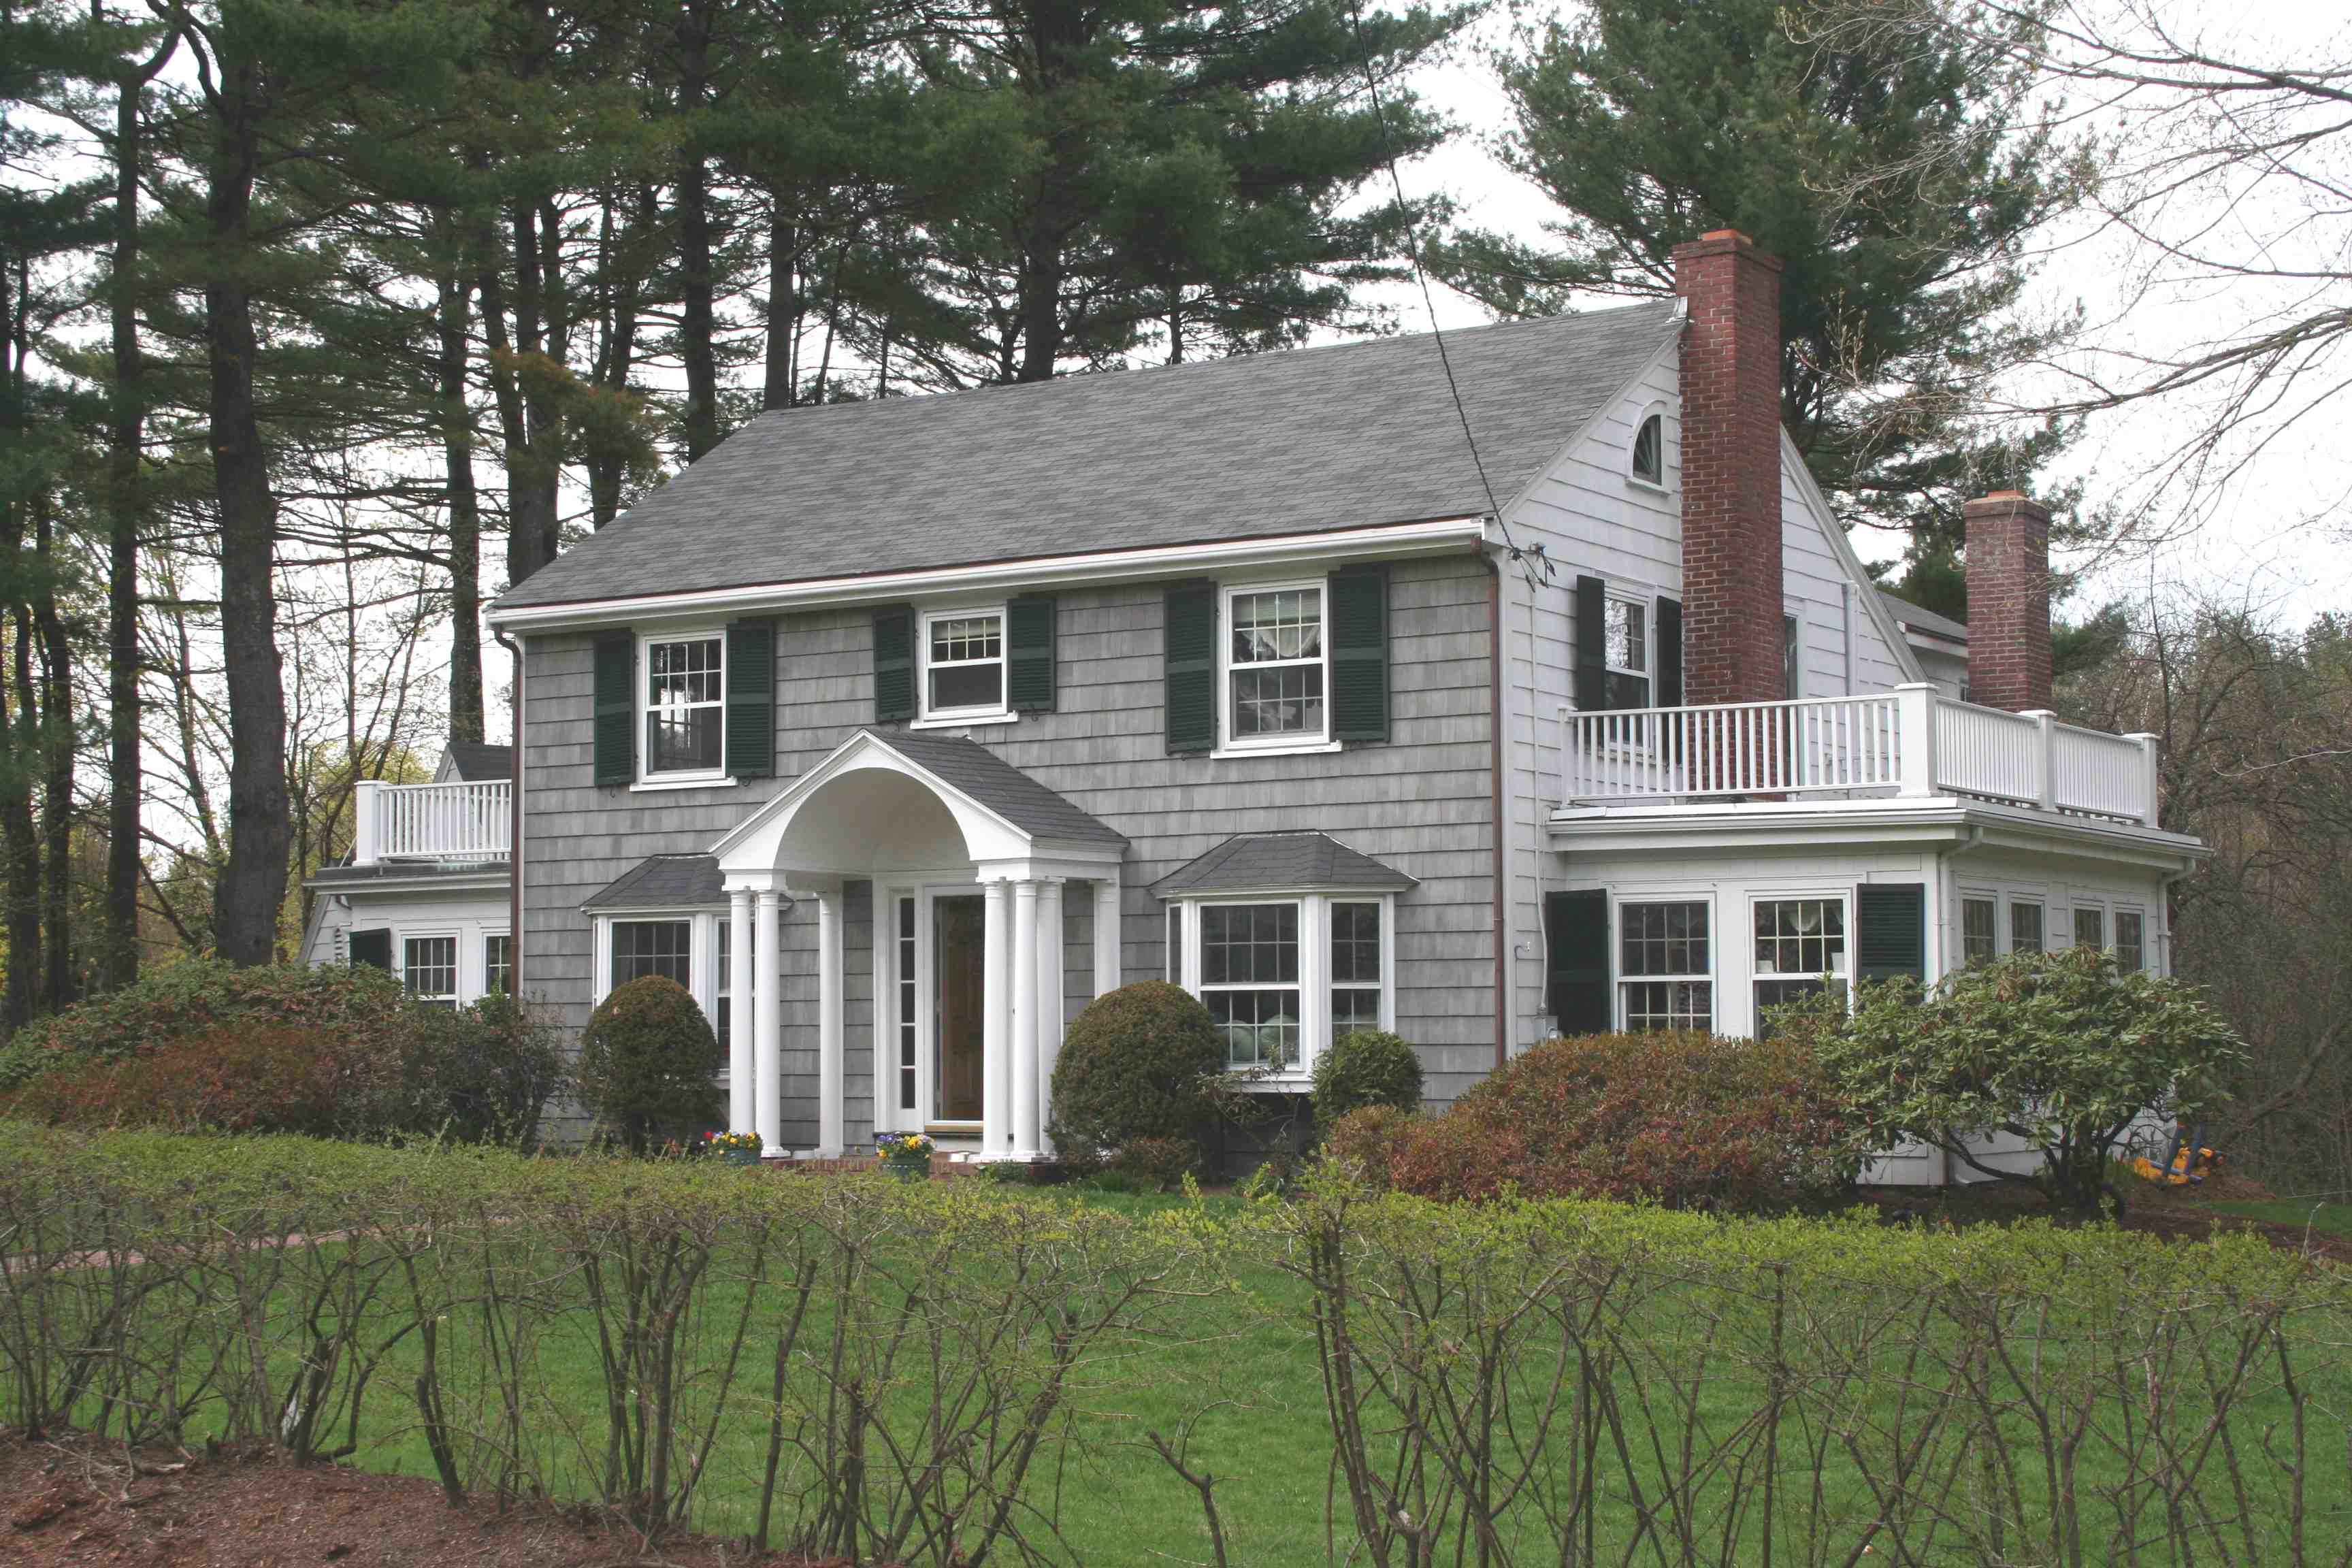 Pinecroft Subdivision Area Weston MA House Pinterest - Colonial portico front entrance